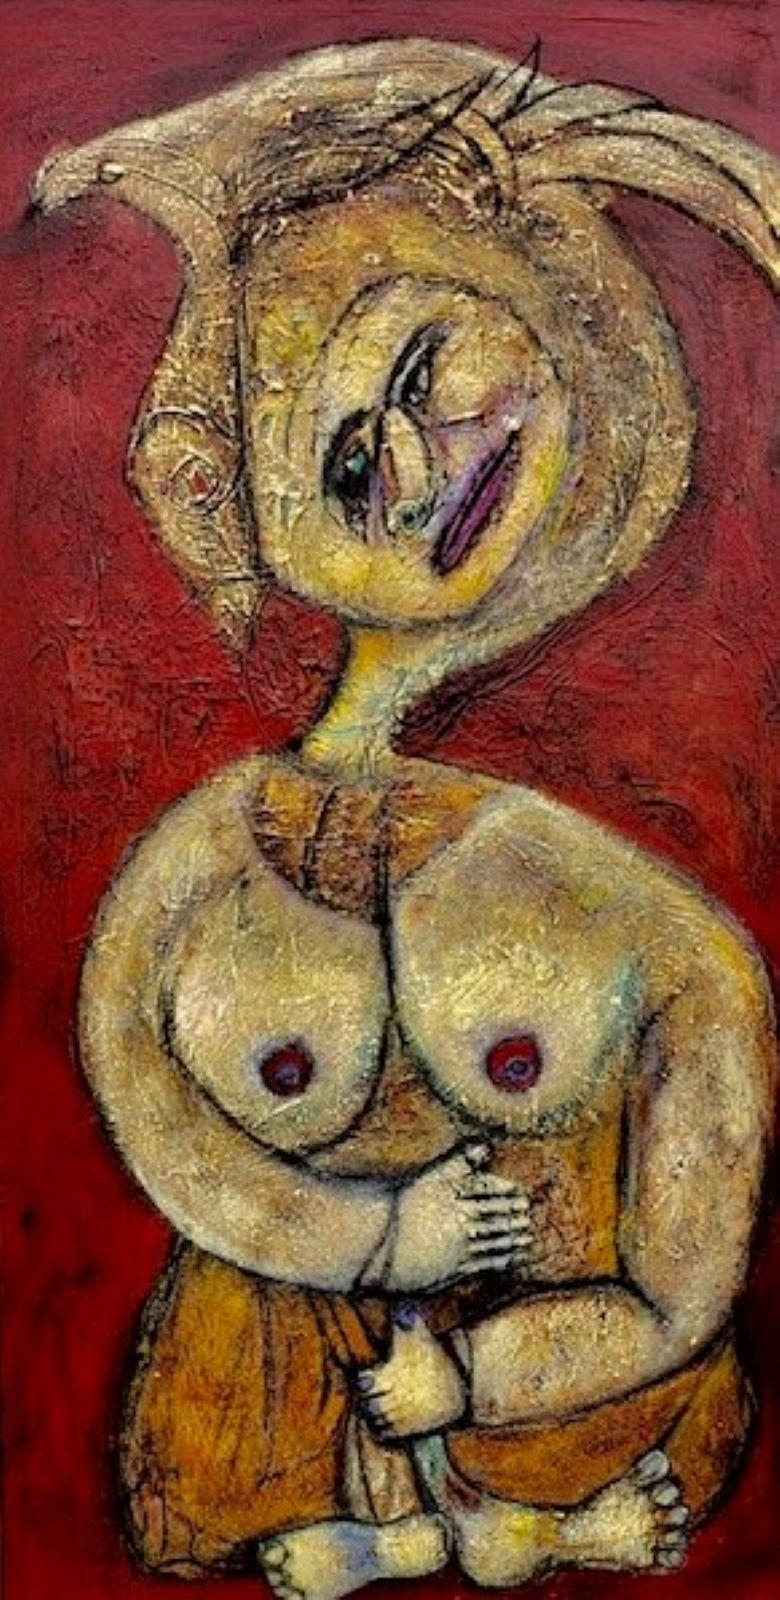 Painting, Layers of Paint, Gold, Red, Female Artist, Queen by Valerio